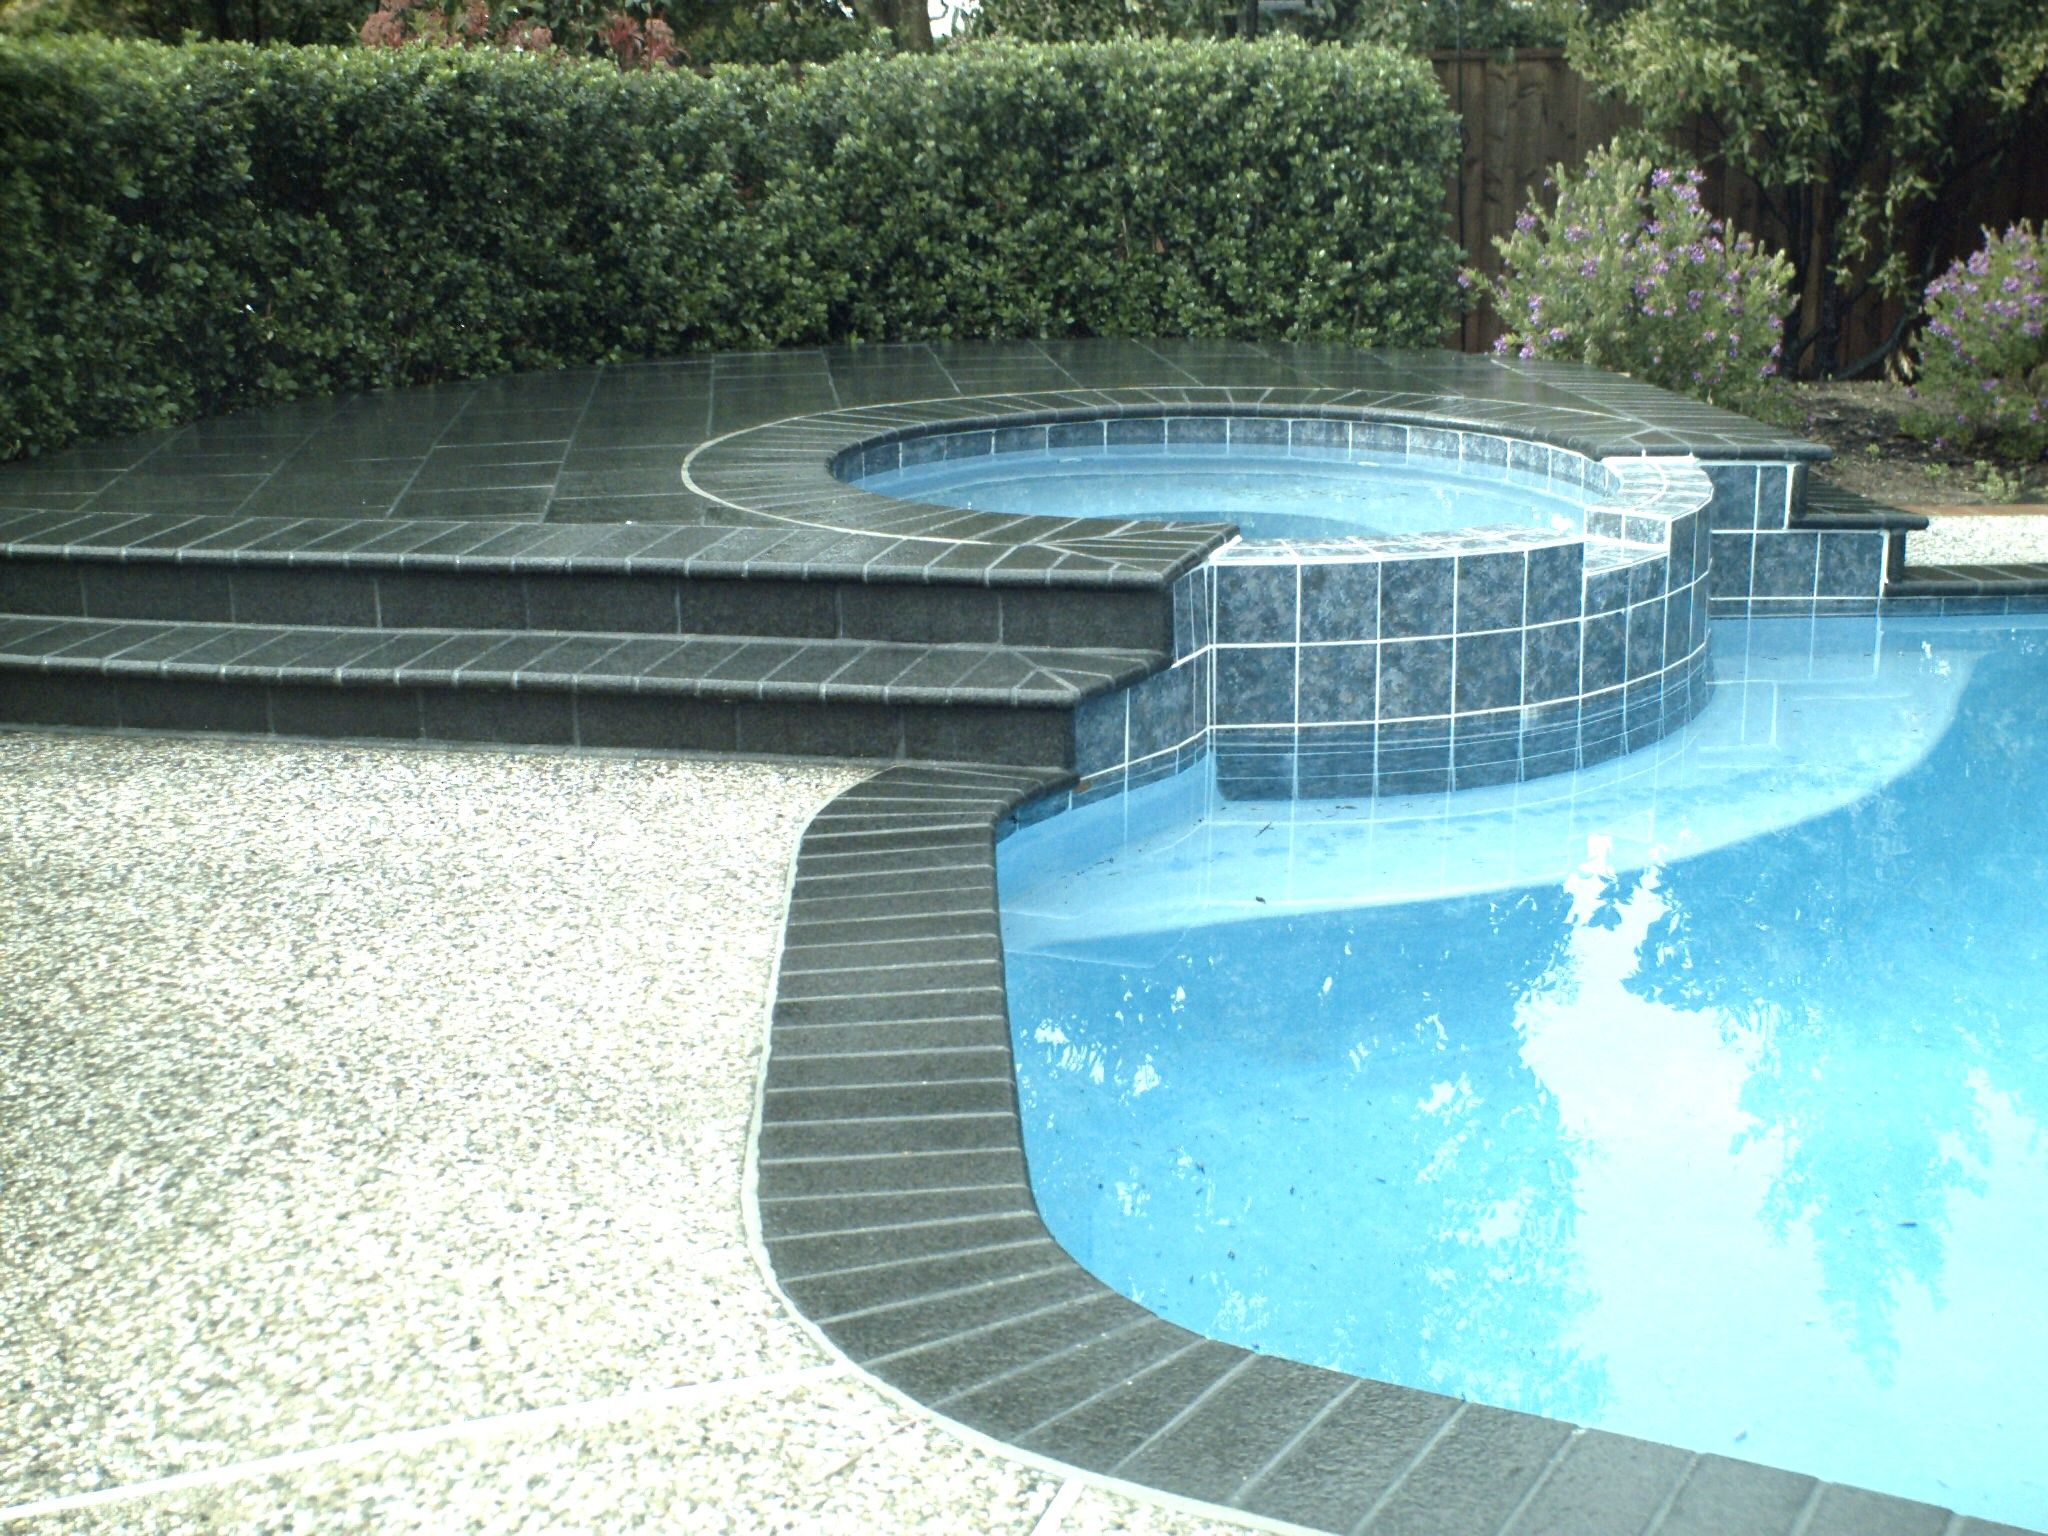 Pool Tile And Coping Ideas find this pin and more on pool ideas Grey Coping Pool Tilespool